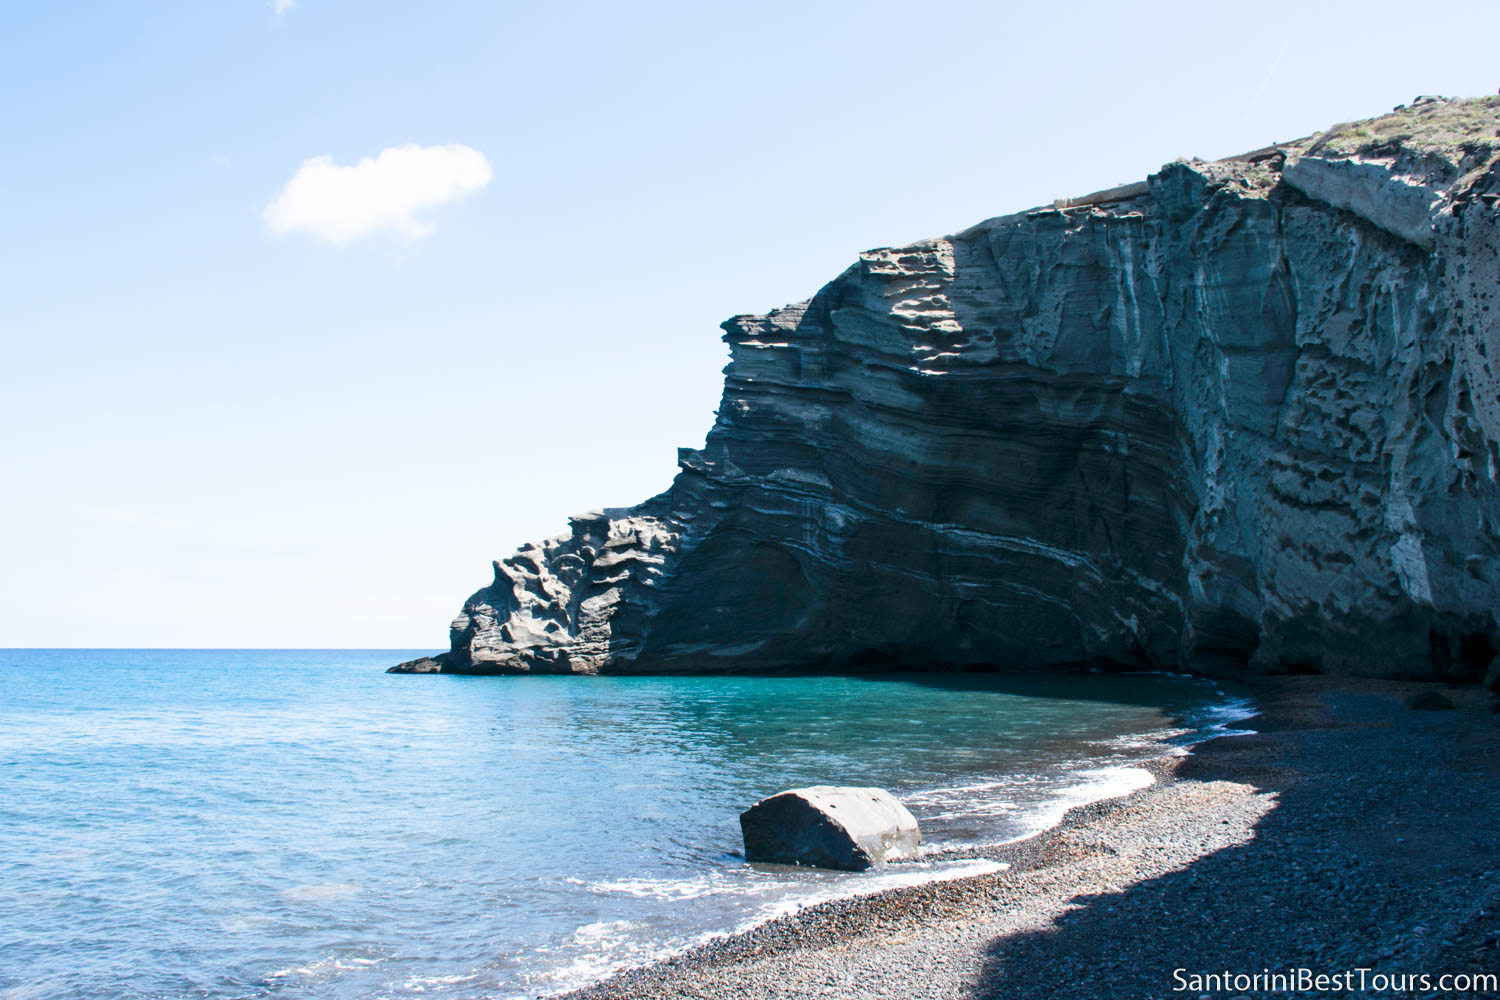 Santorini beaches - Columbo